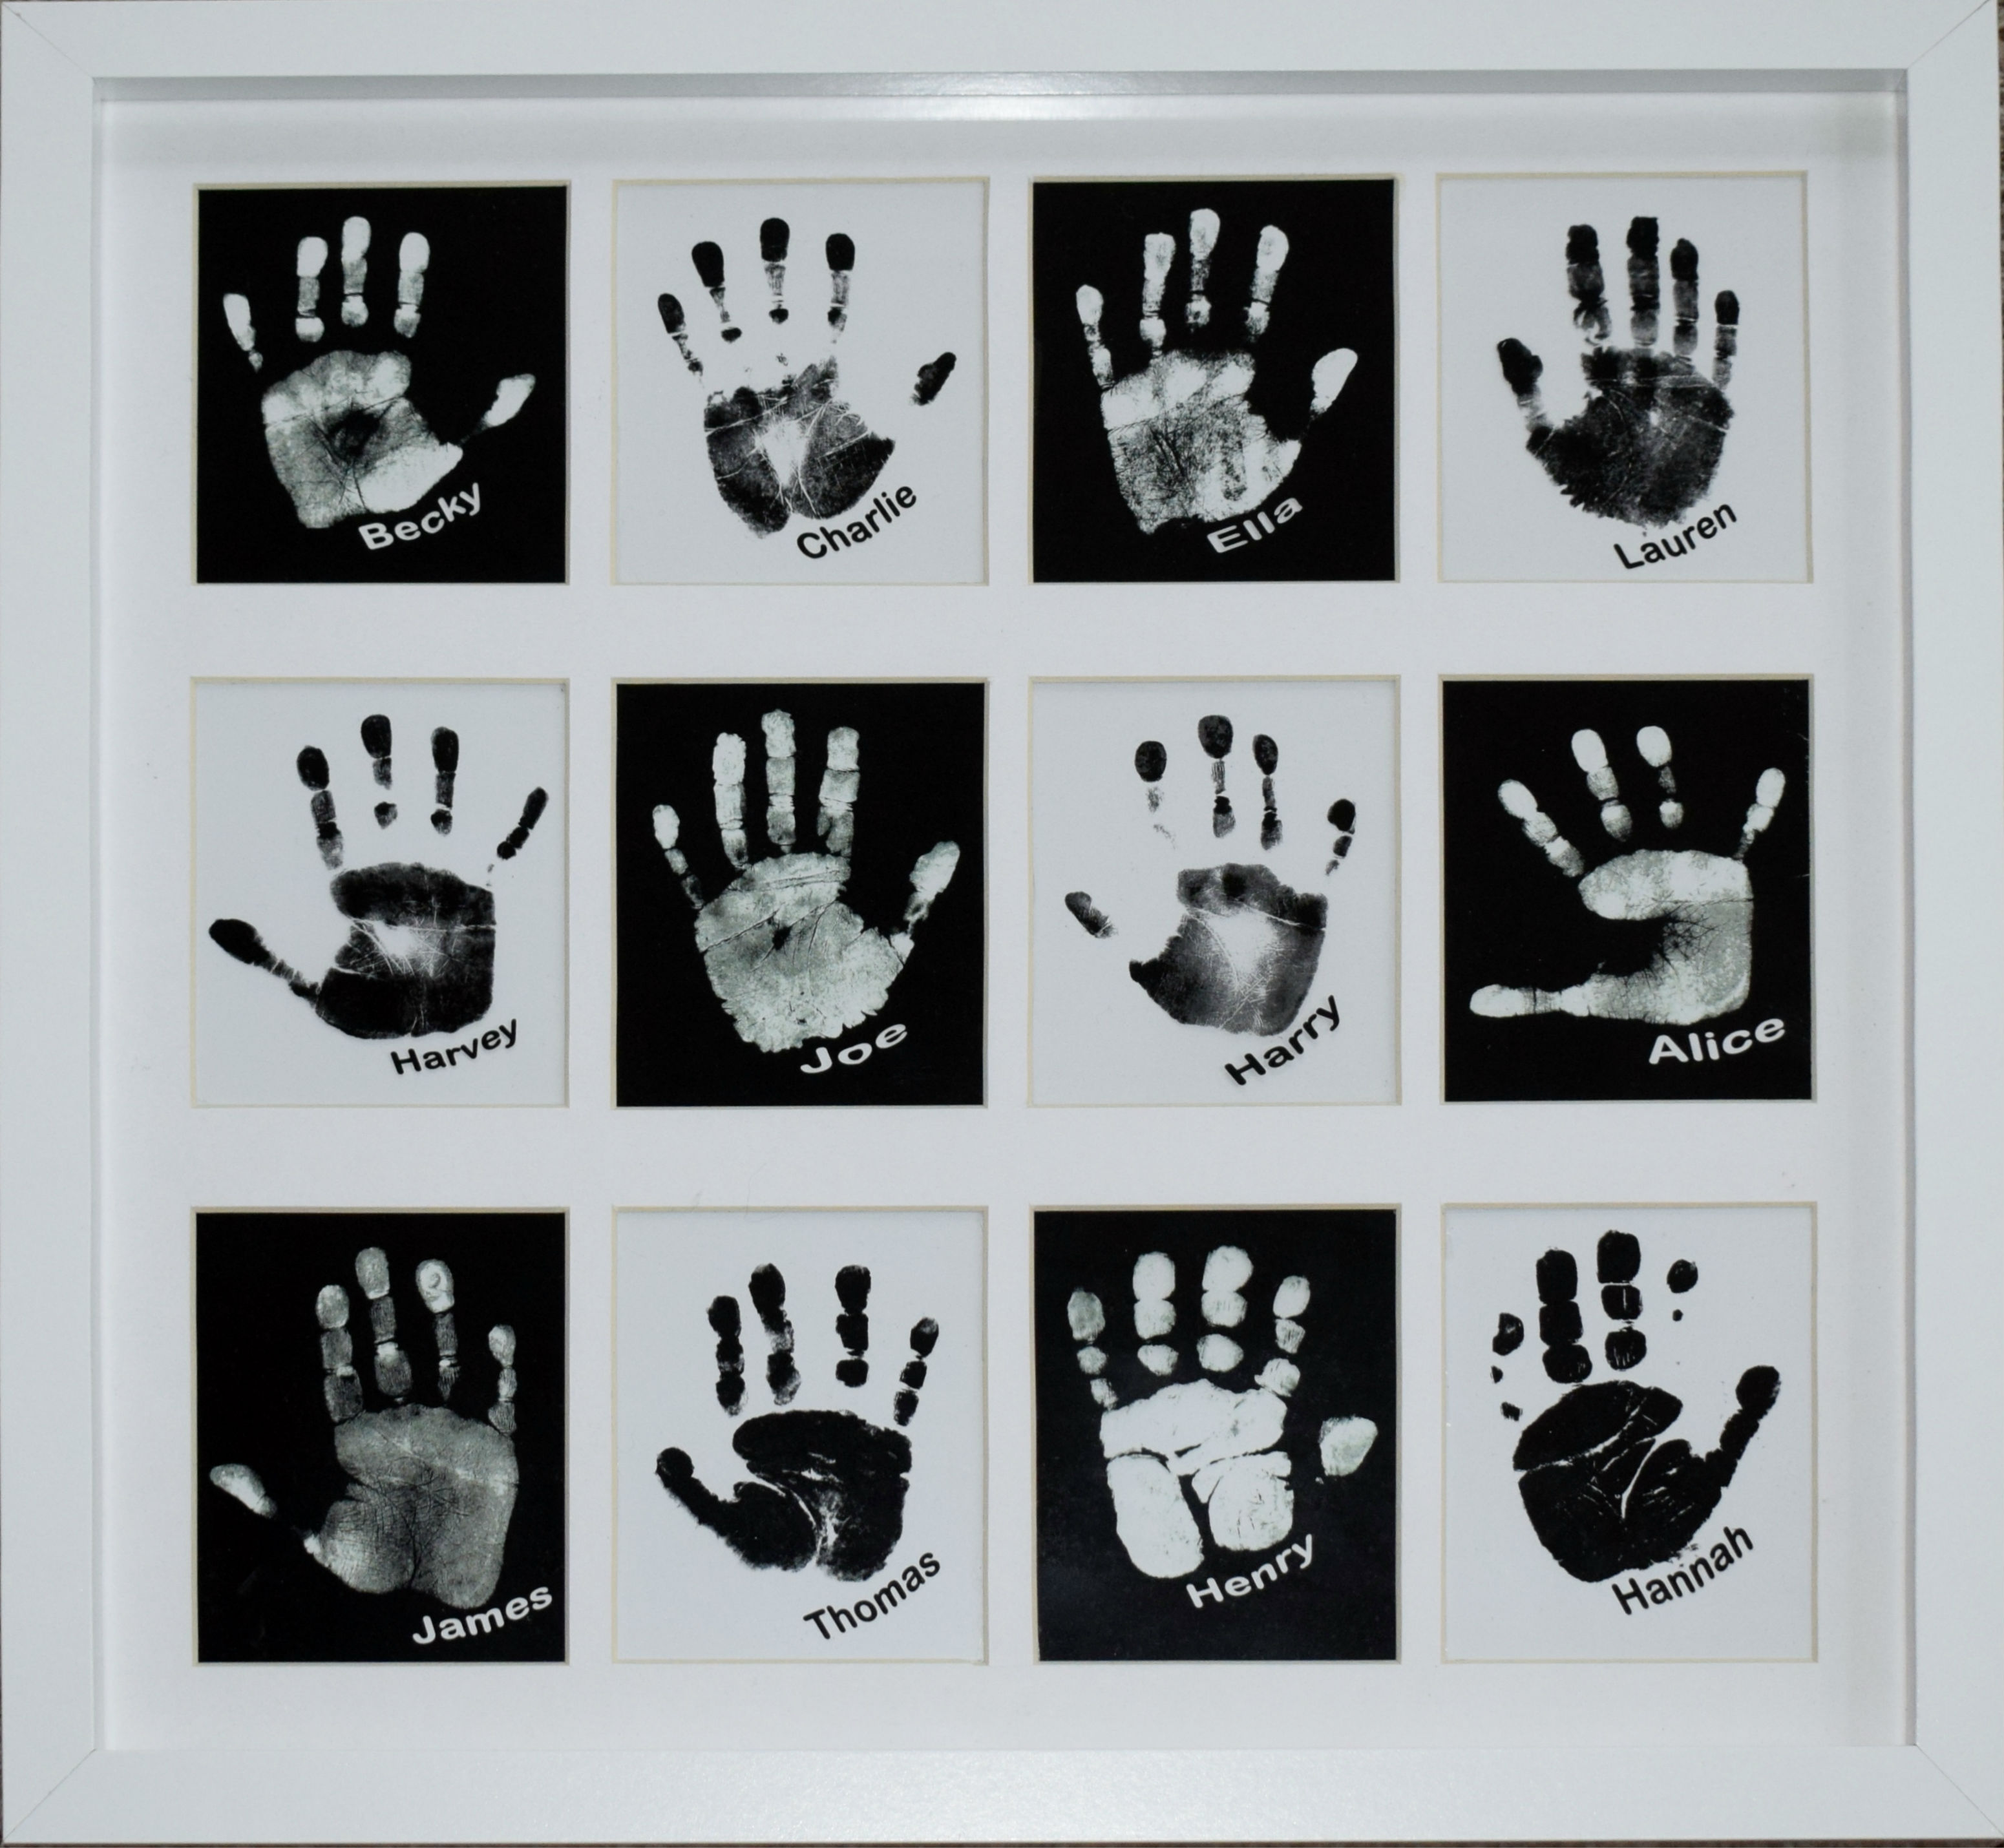 personalised pop art showing a group if children's hands and names